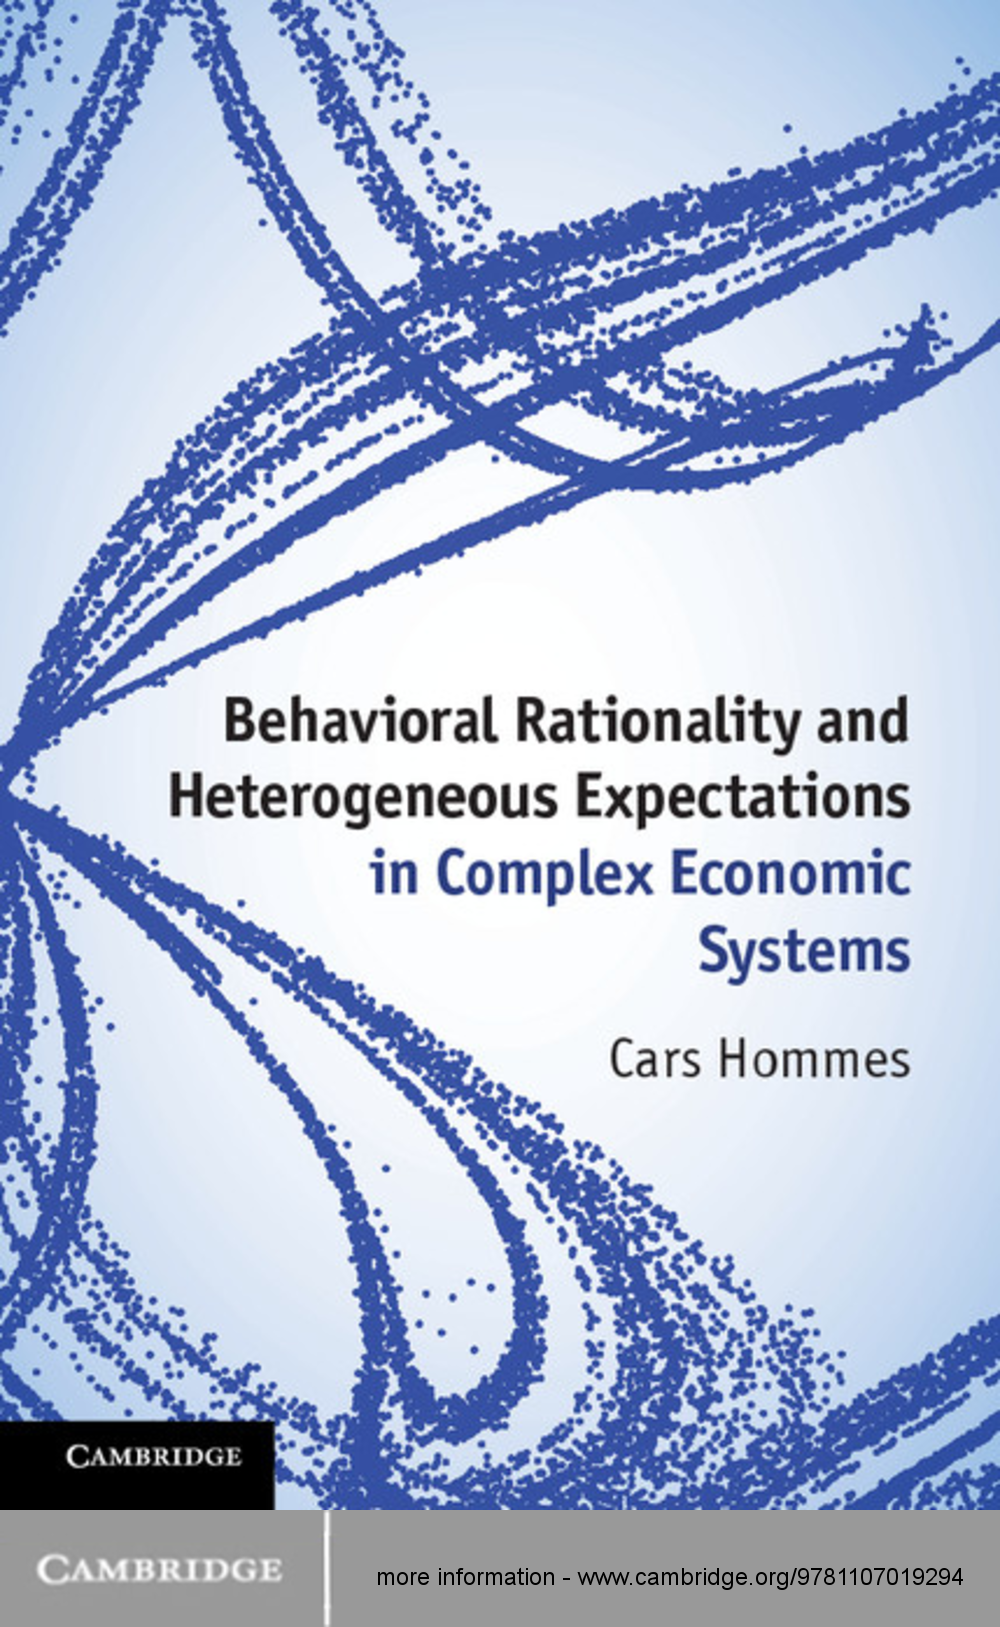 Behavioral Rationality and Heterogeneous Expectations in Complex Economic Systems